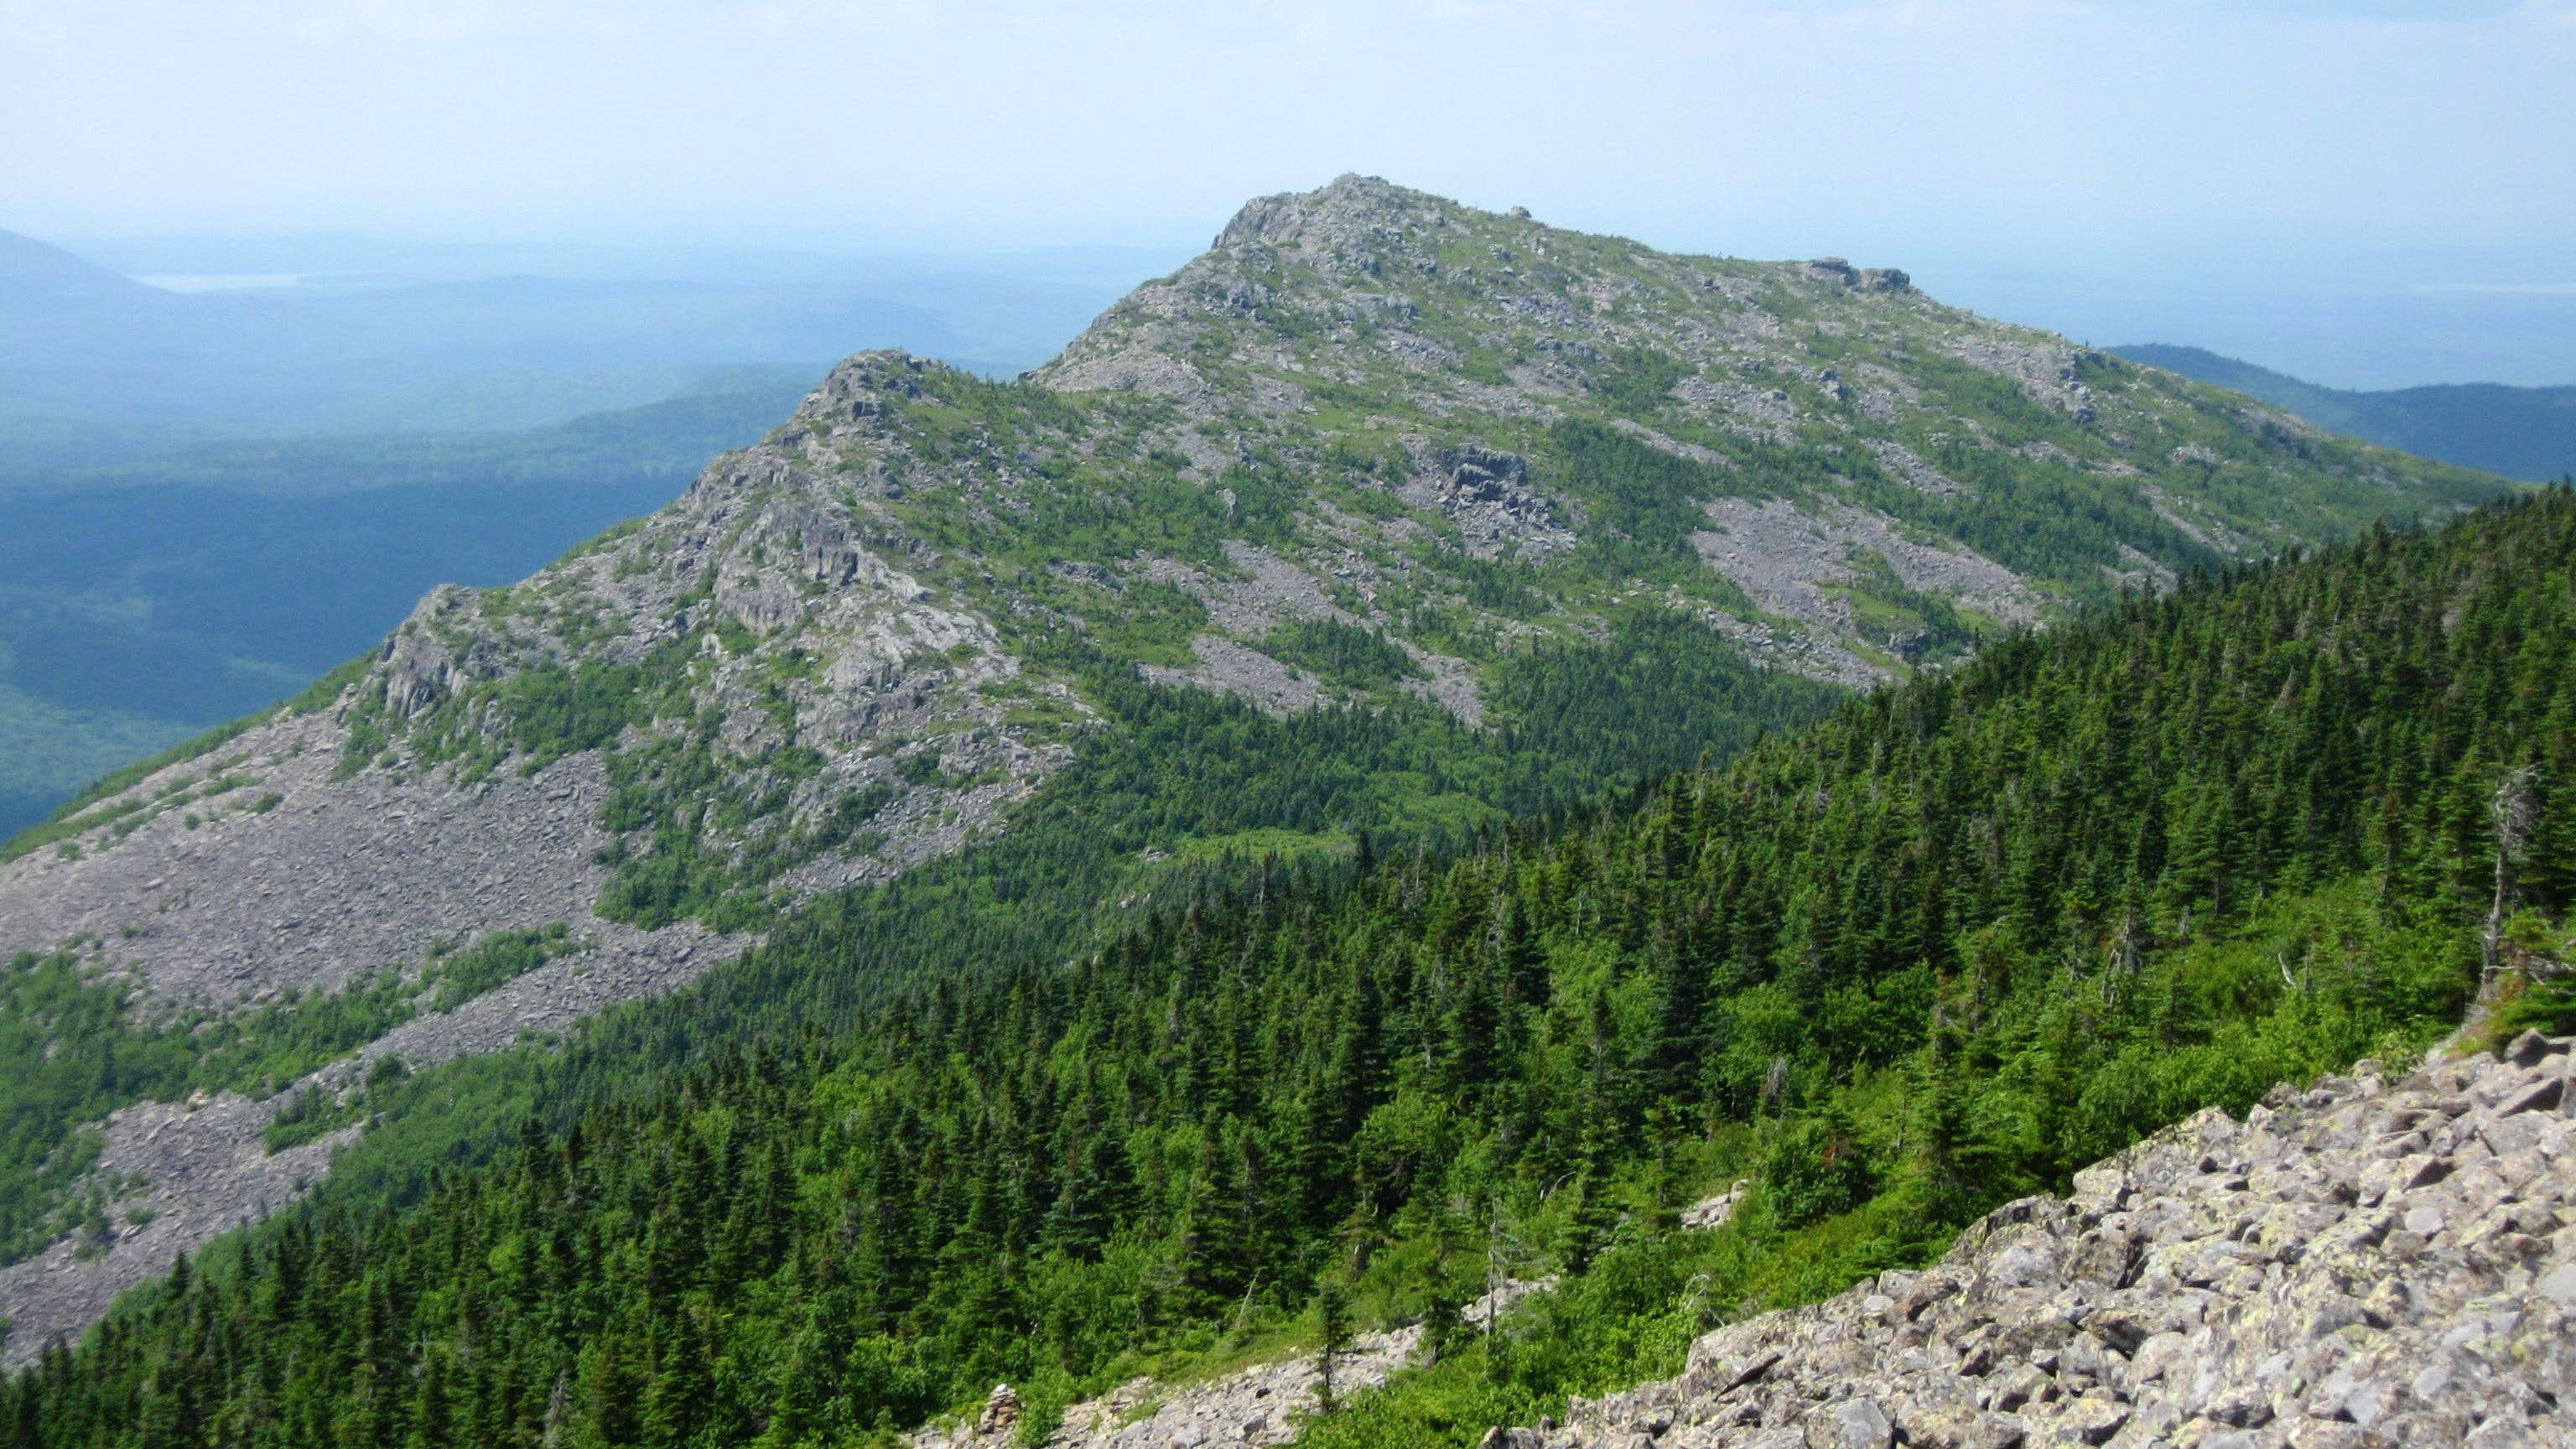 Peak Of The Ridges